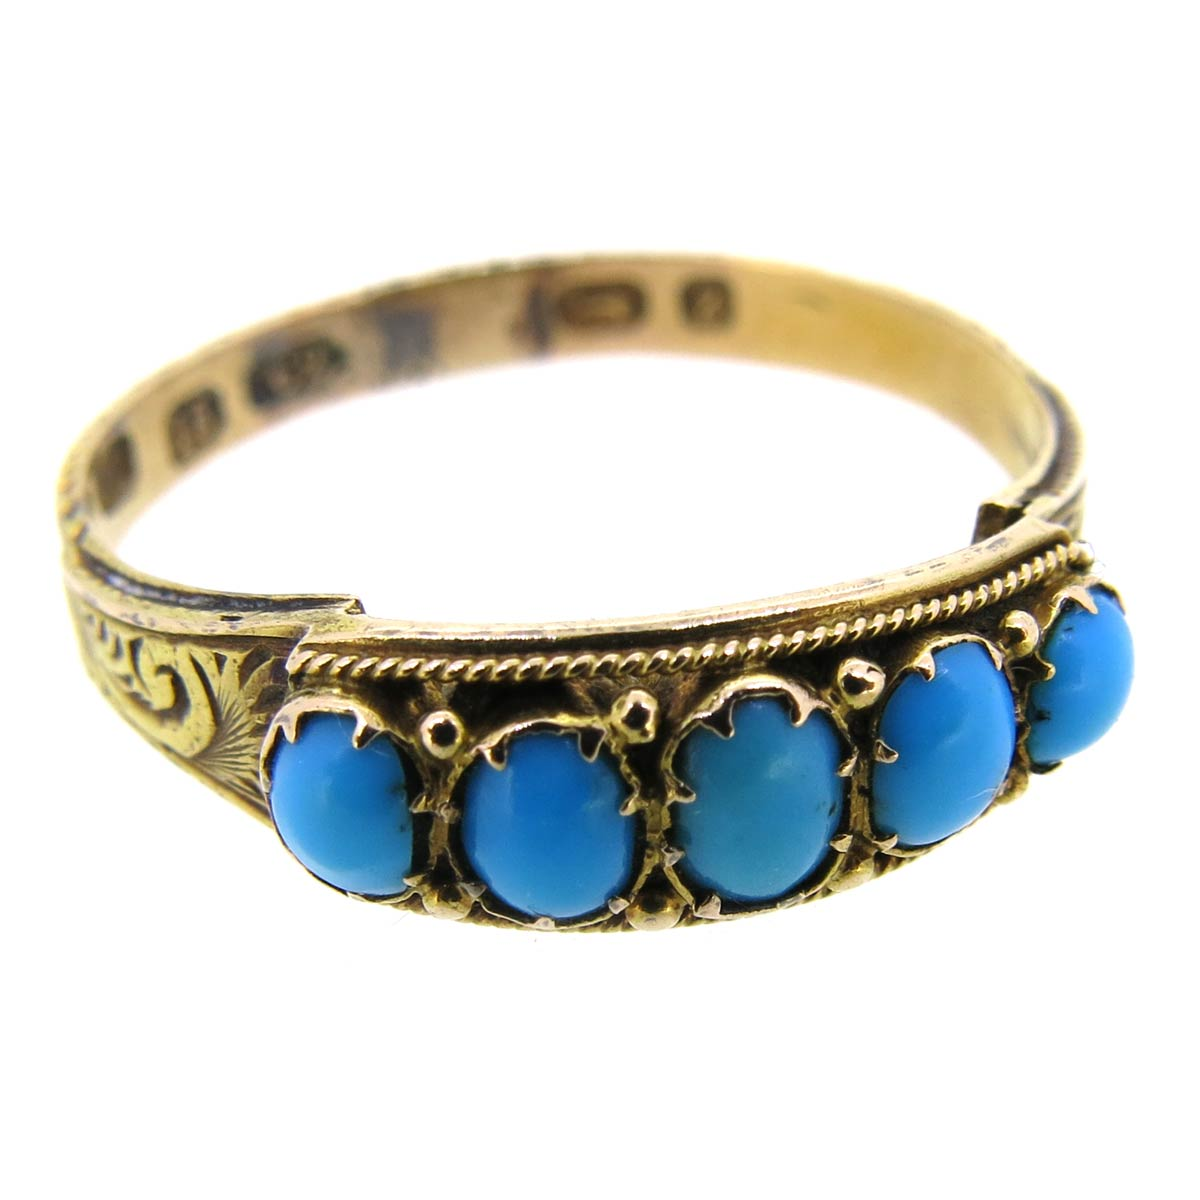 Antique Gold & Turquoise Ring